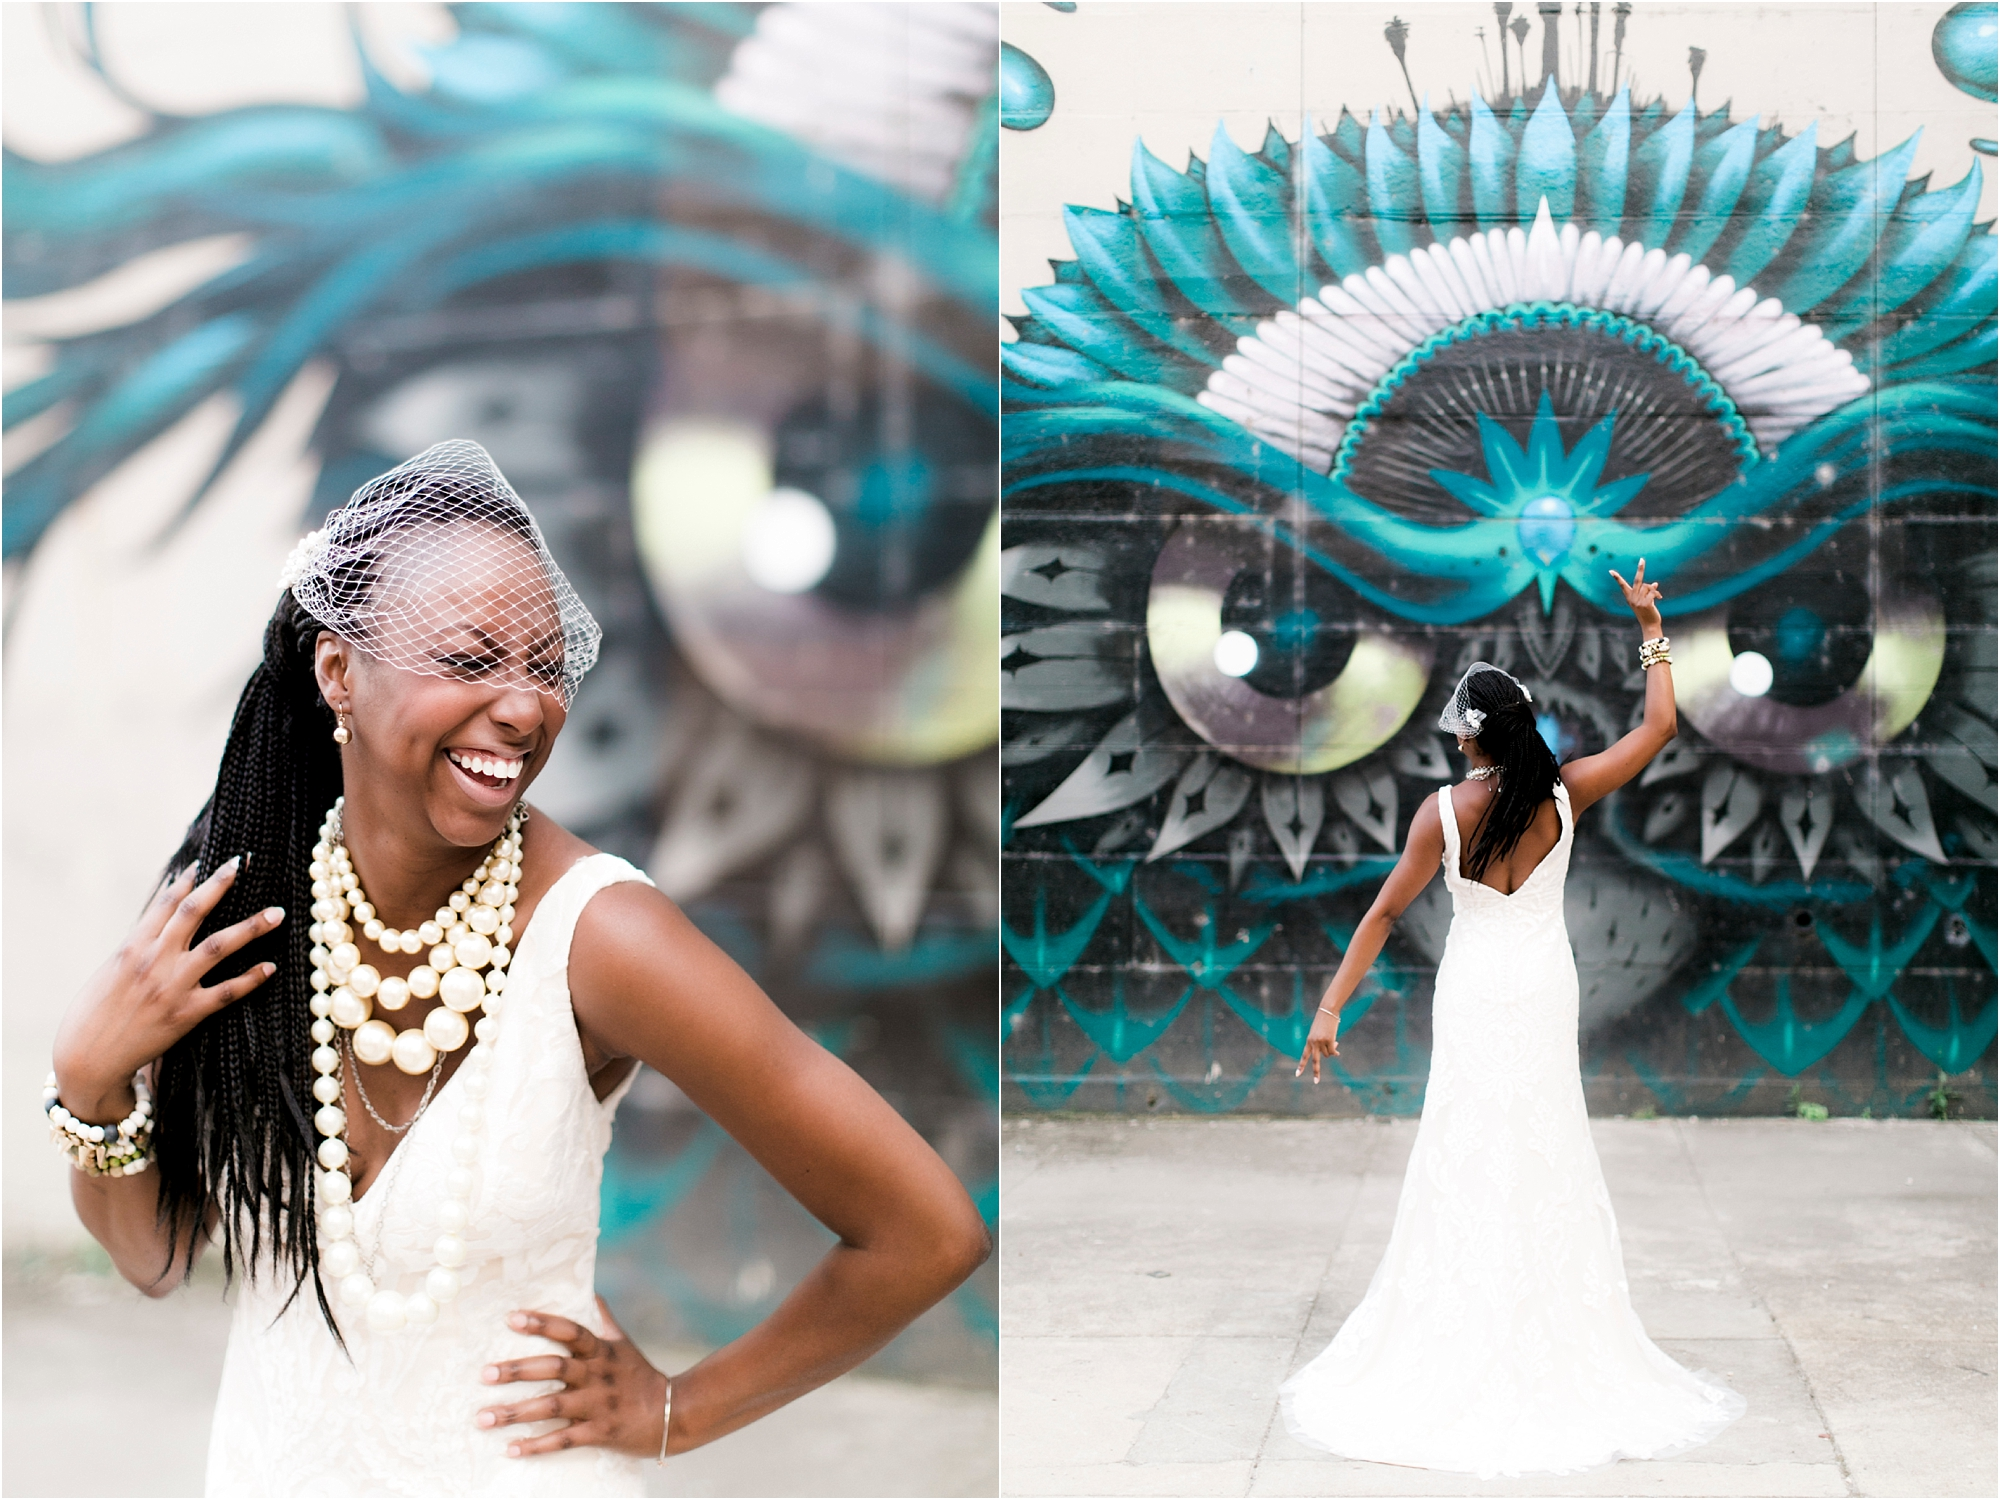 urban-set-bride-richmond-virginia-street-art-bridal-session-photos_0004.jpg